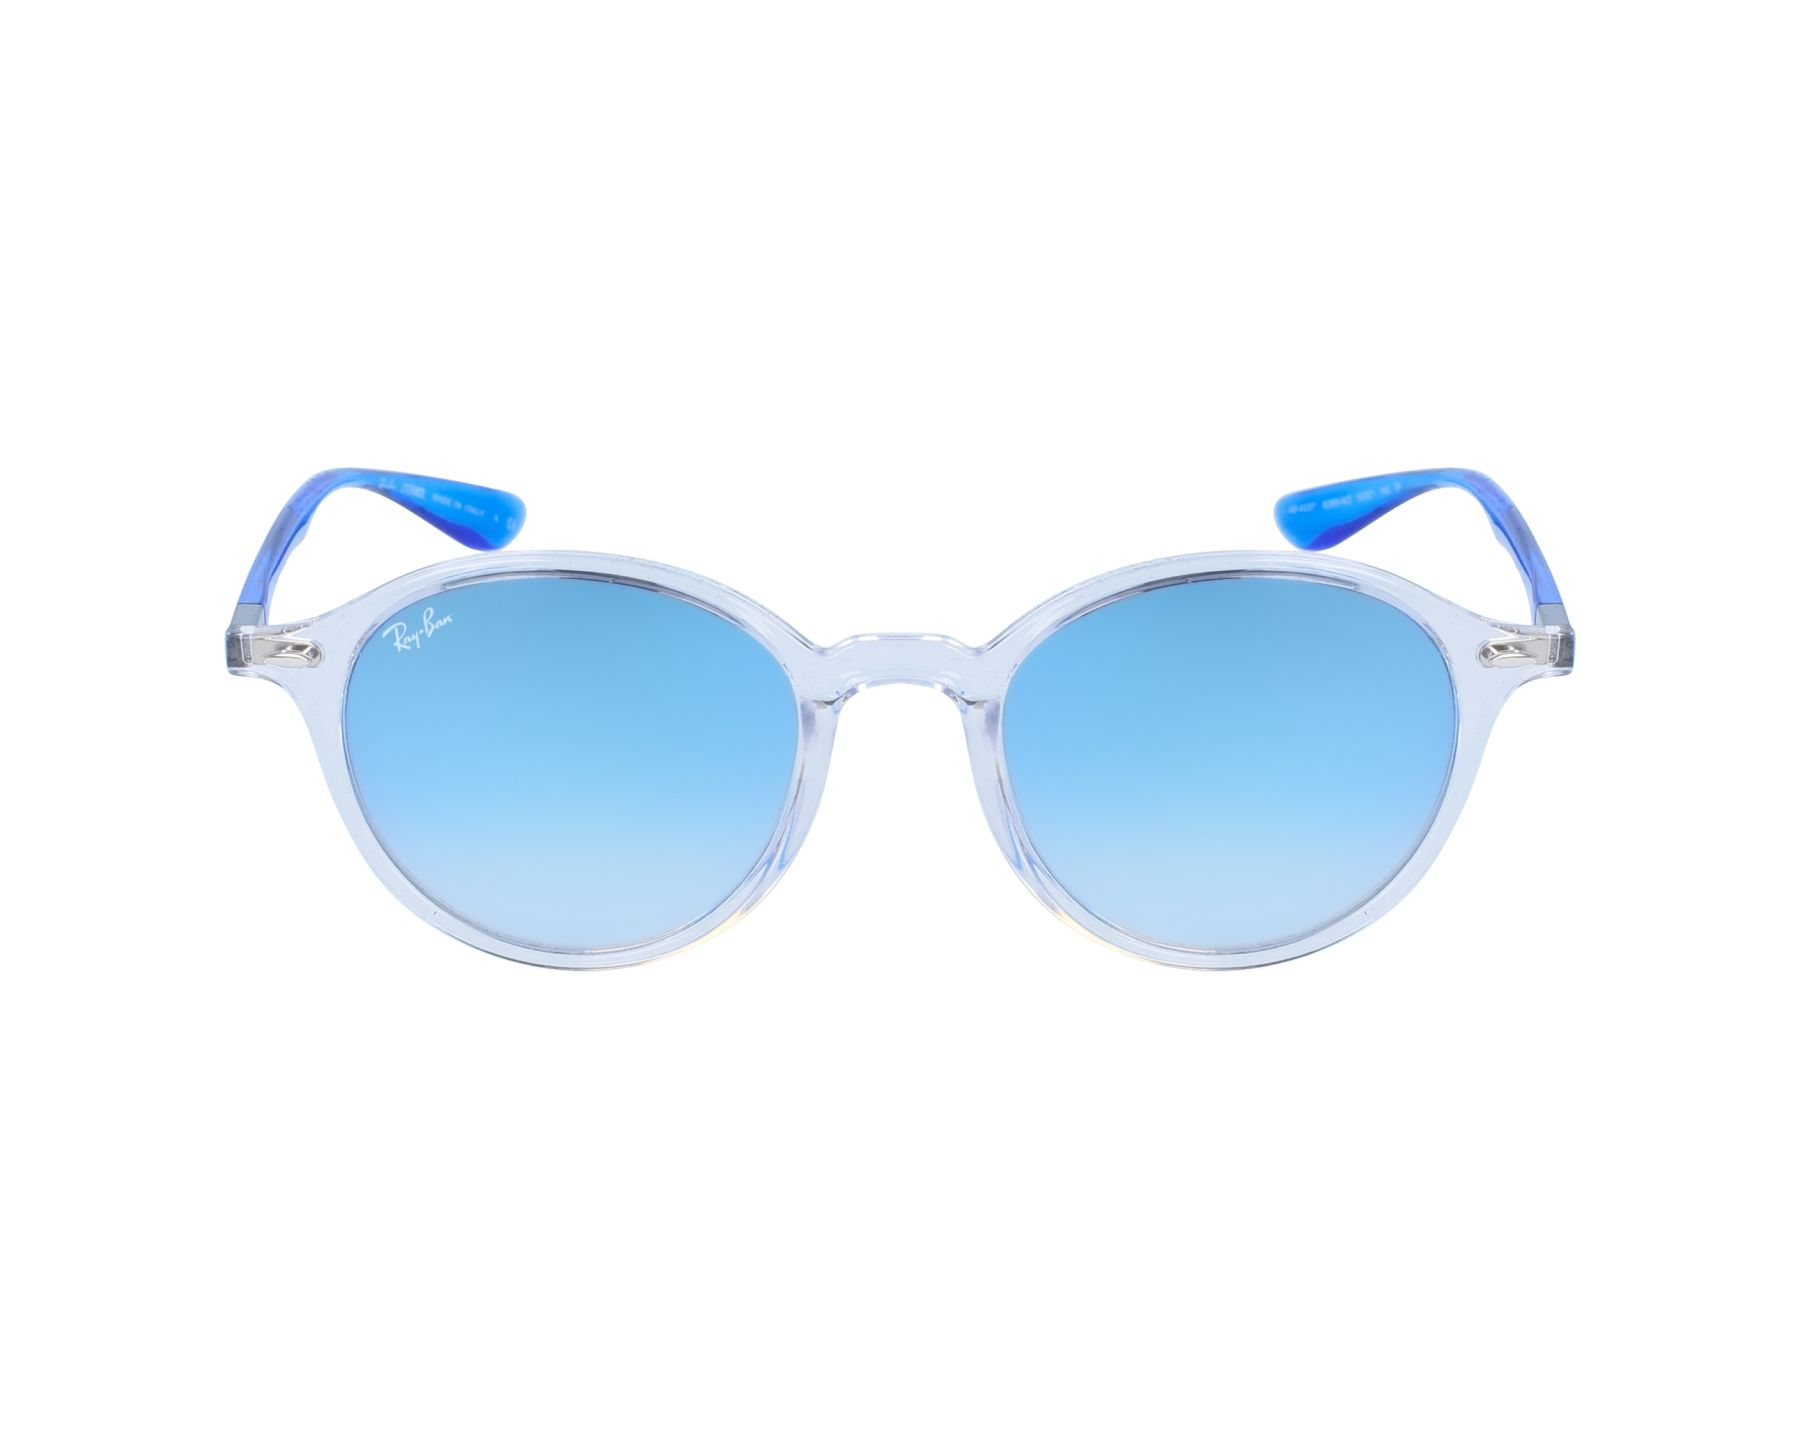 038c5860bb3 Sunglasses Ray-Ban RB-4237 62894O 50-21 White Blue profile view